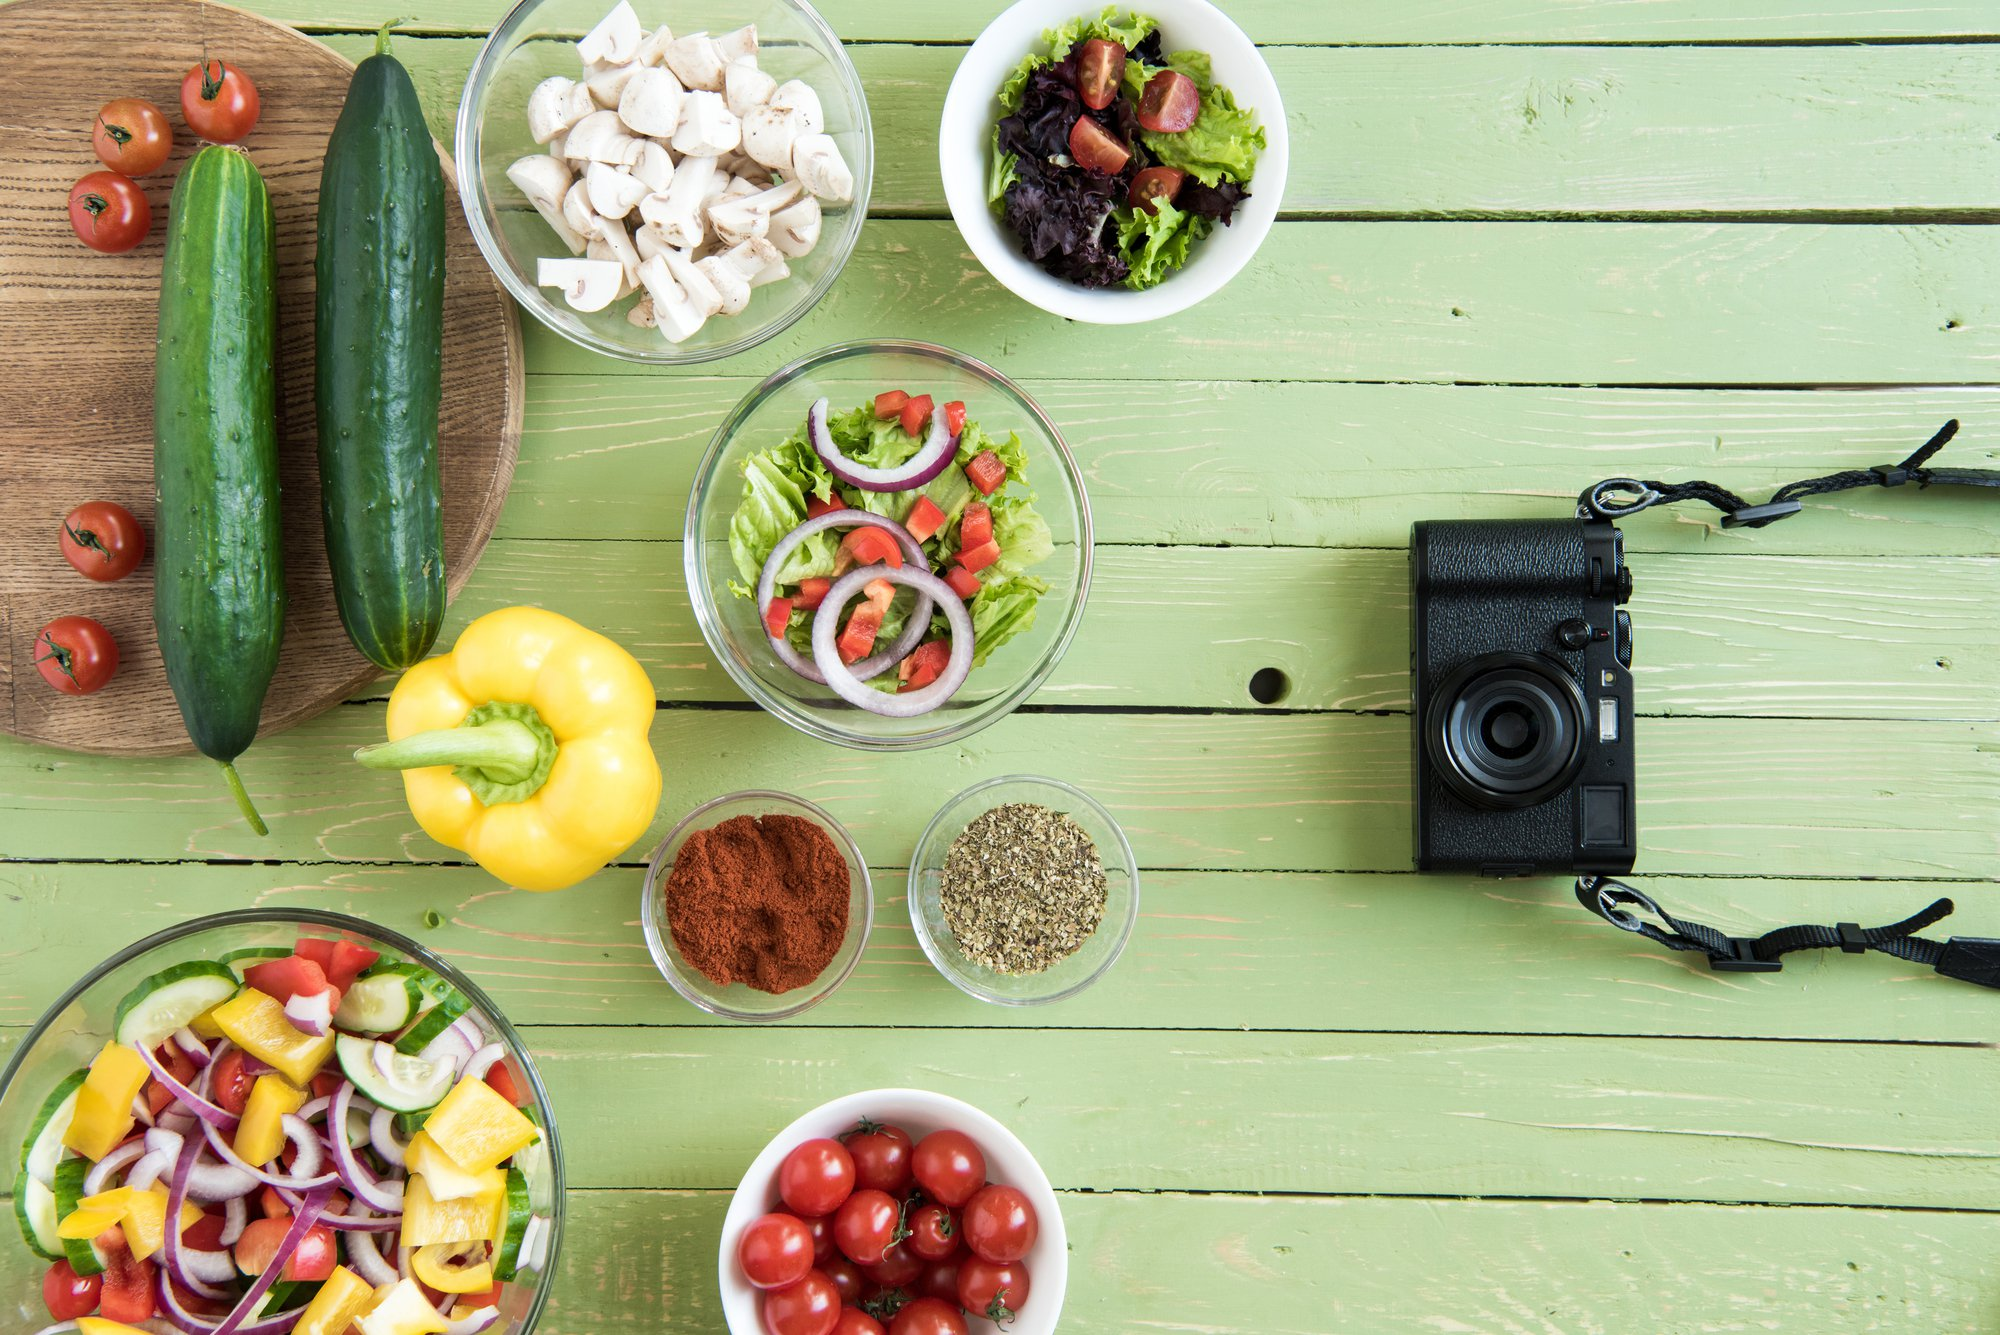 Food photography - Five Tips to Get The Best Snaps